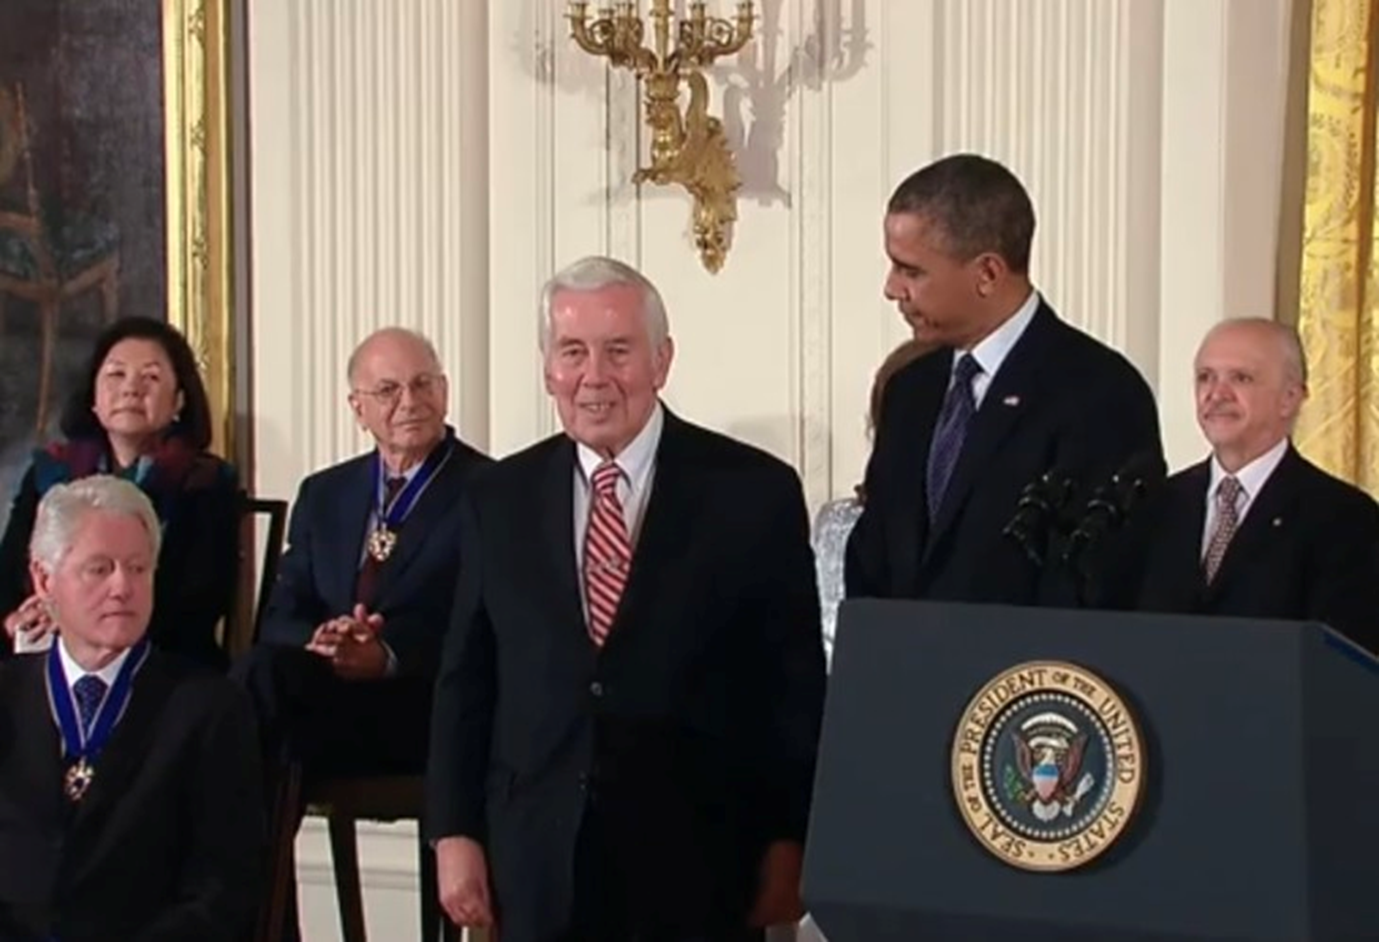 Remembering Former U.S. Senator Richard Lugar of Indiana Who Died Over the Weekend at 87